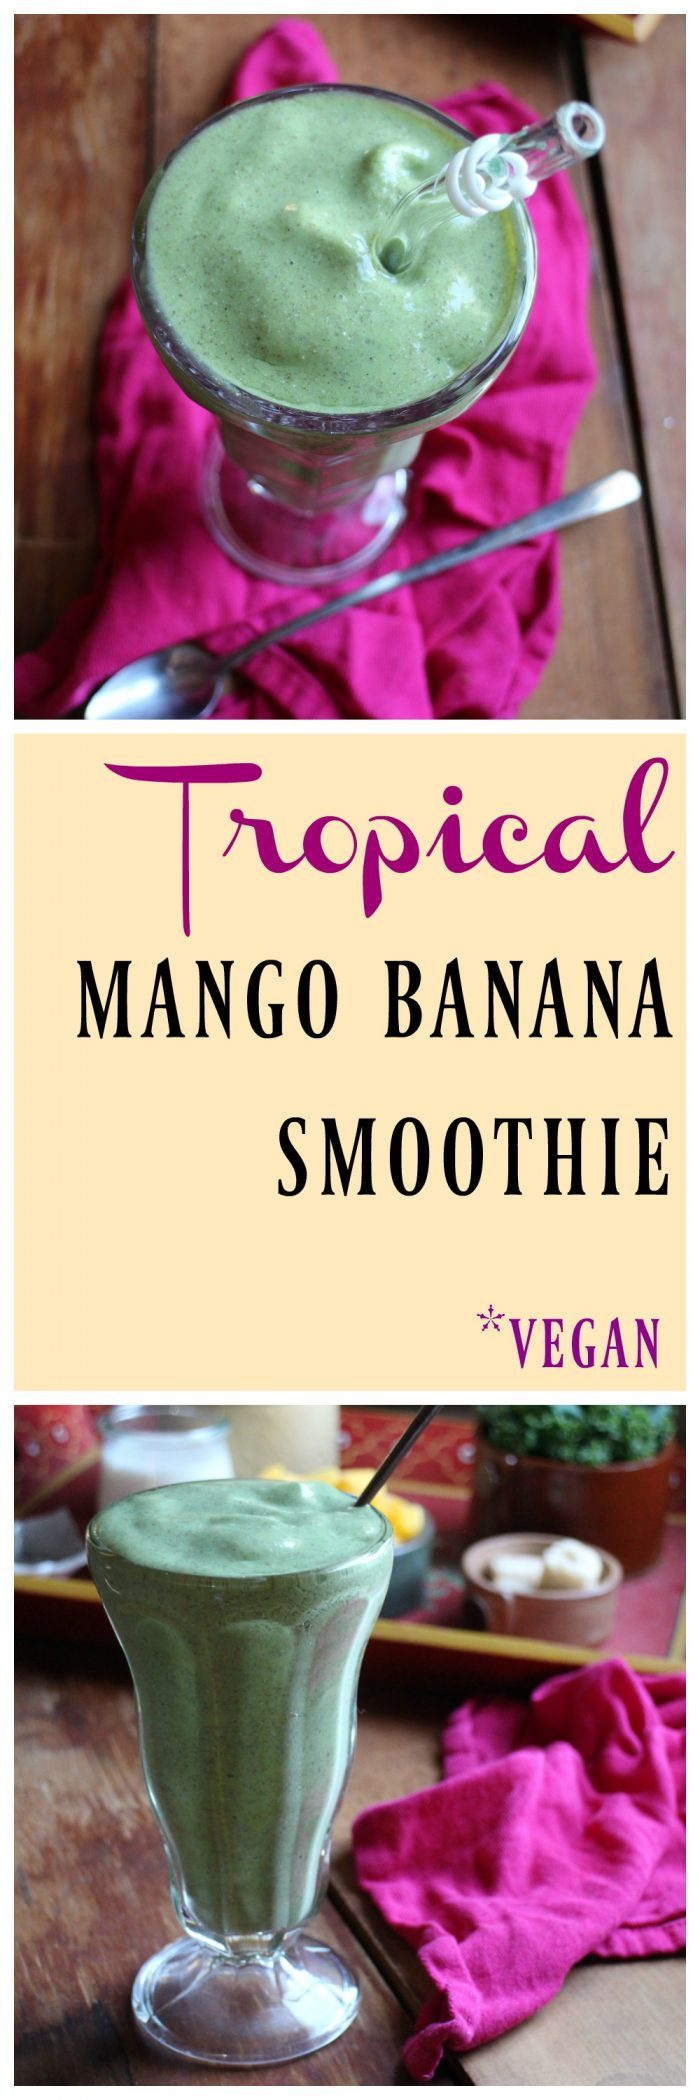 Tropical smoothie with mango & banana from 40 Days of Green Smoothies by Becky Striepe. This dairy-free & vegan smoothie is packed with good for you ingredients. | cadryskitchen.com